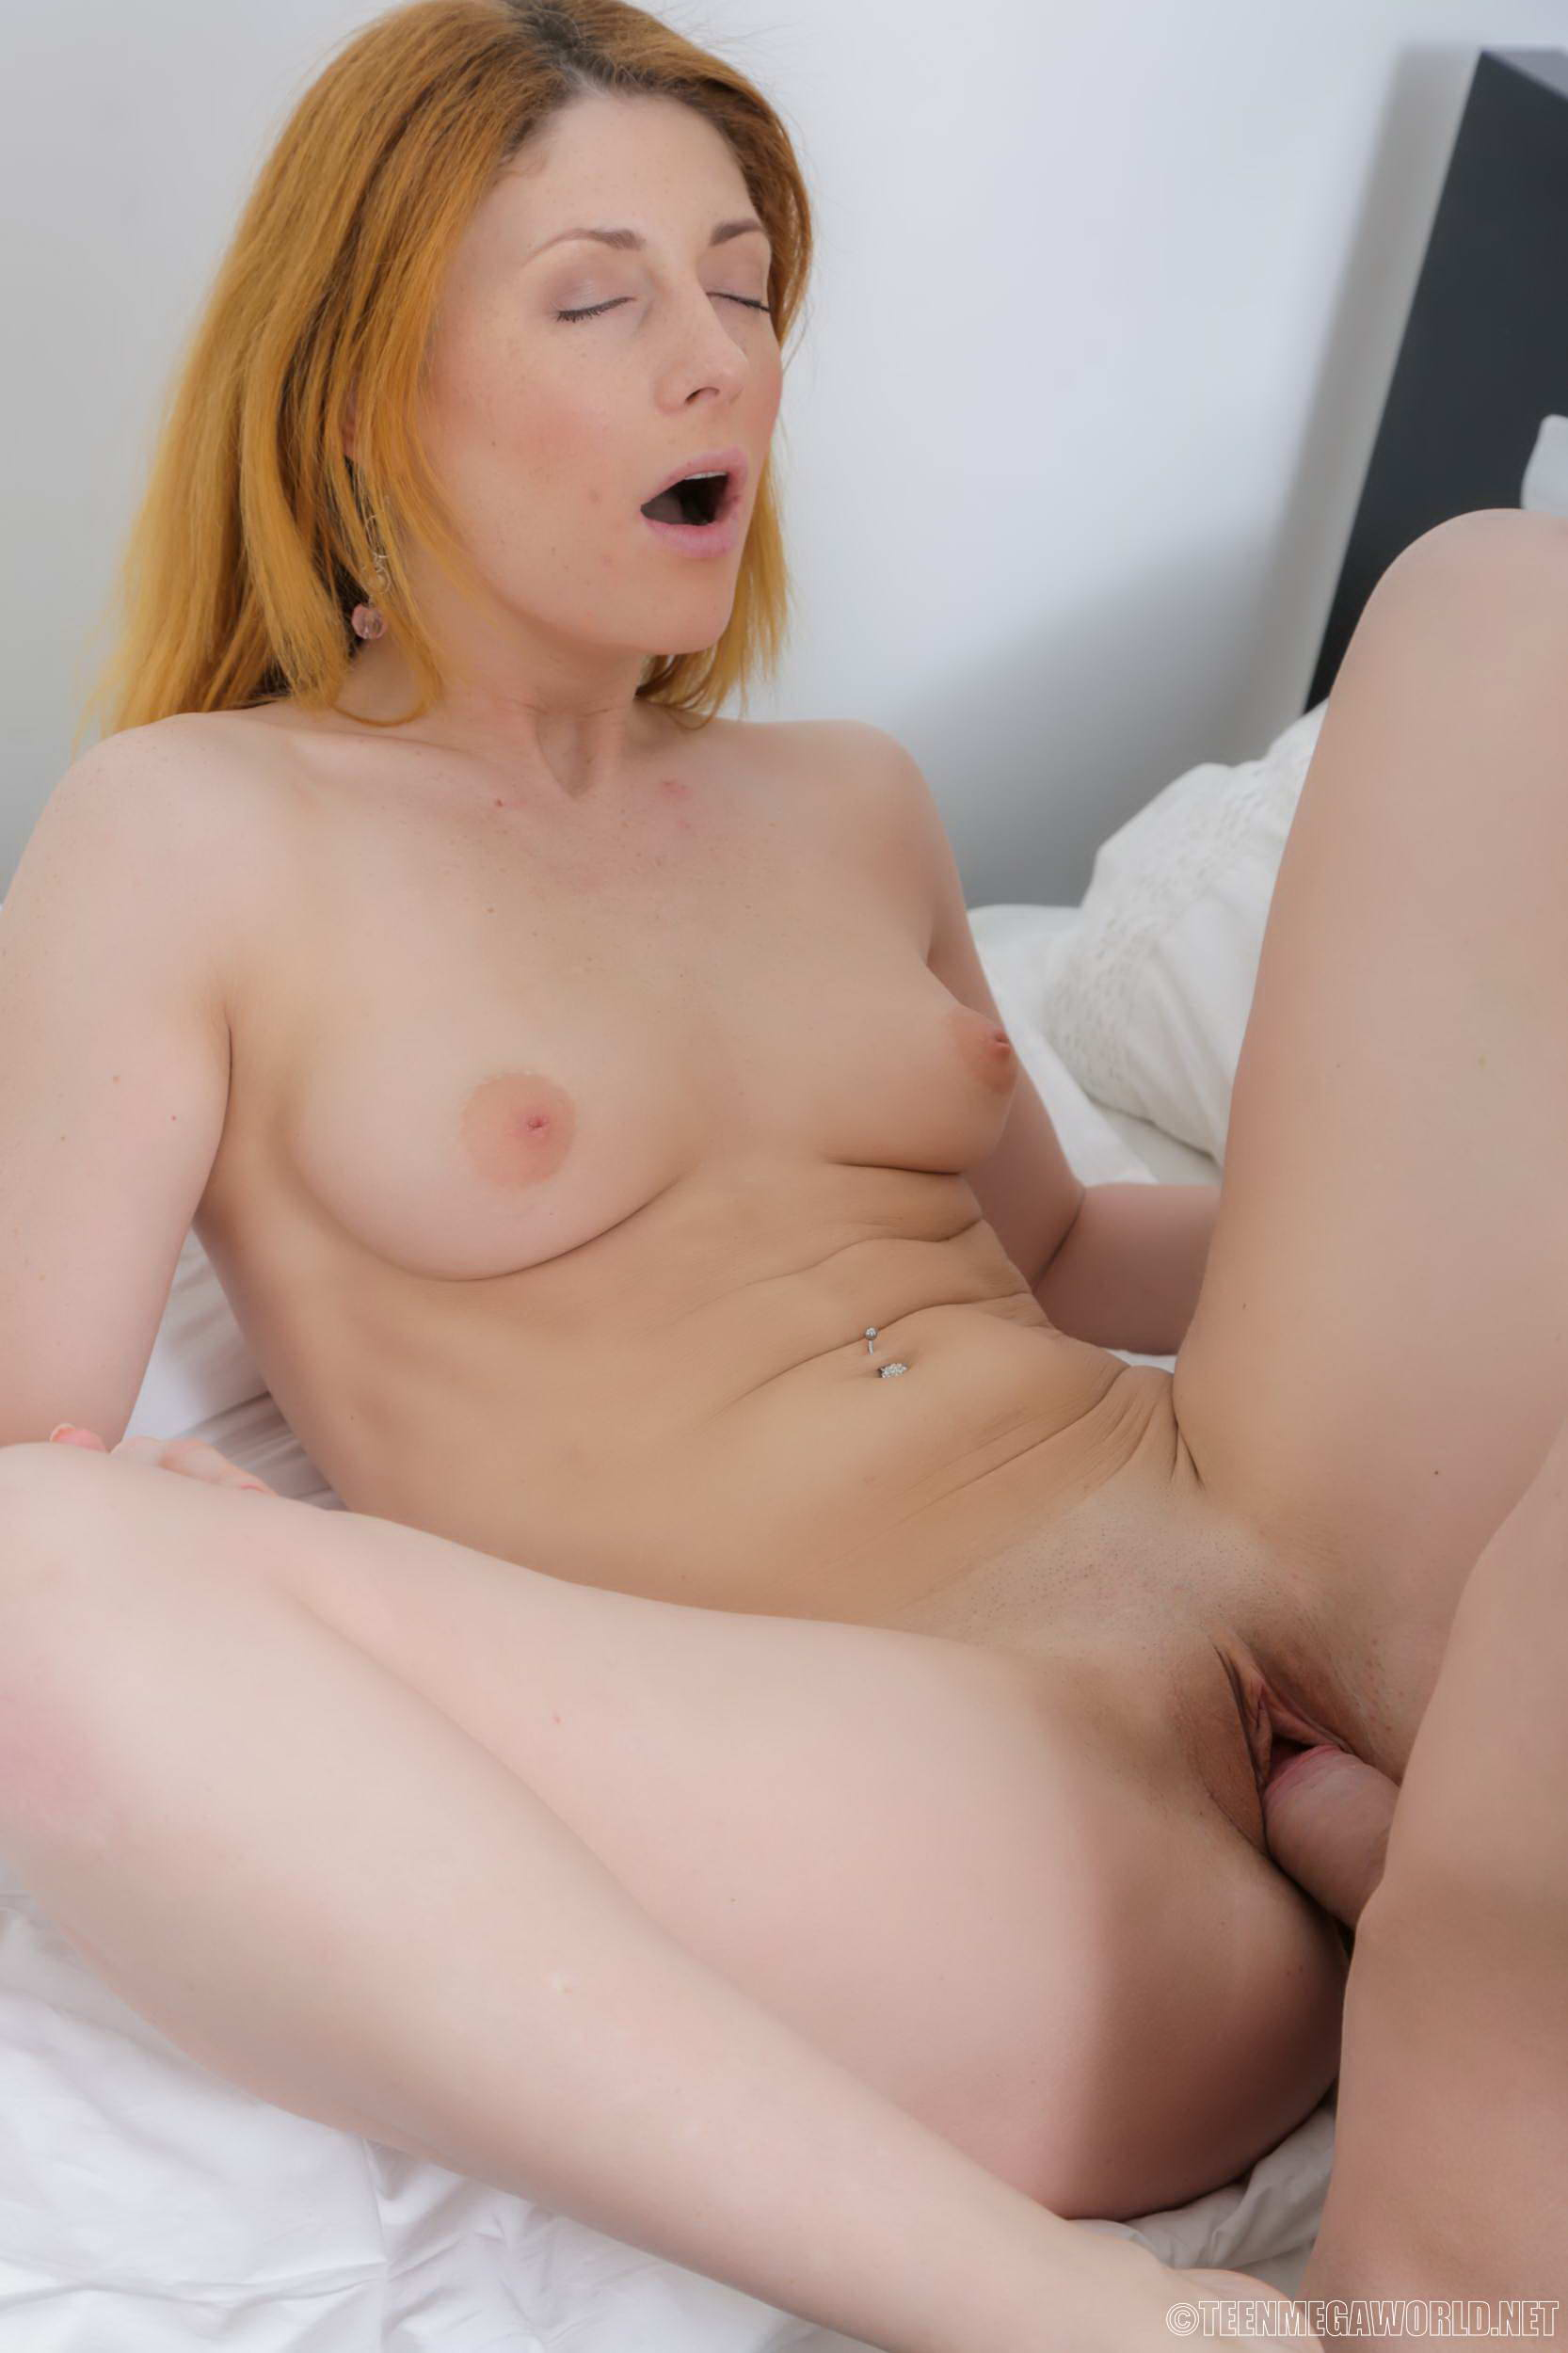 Dirty red head porn sex